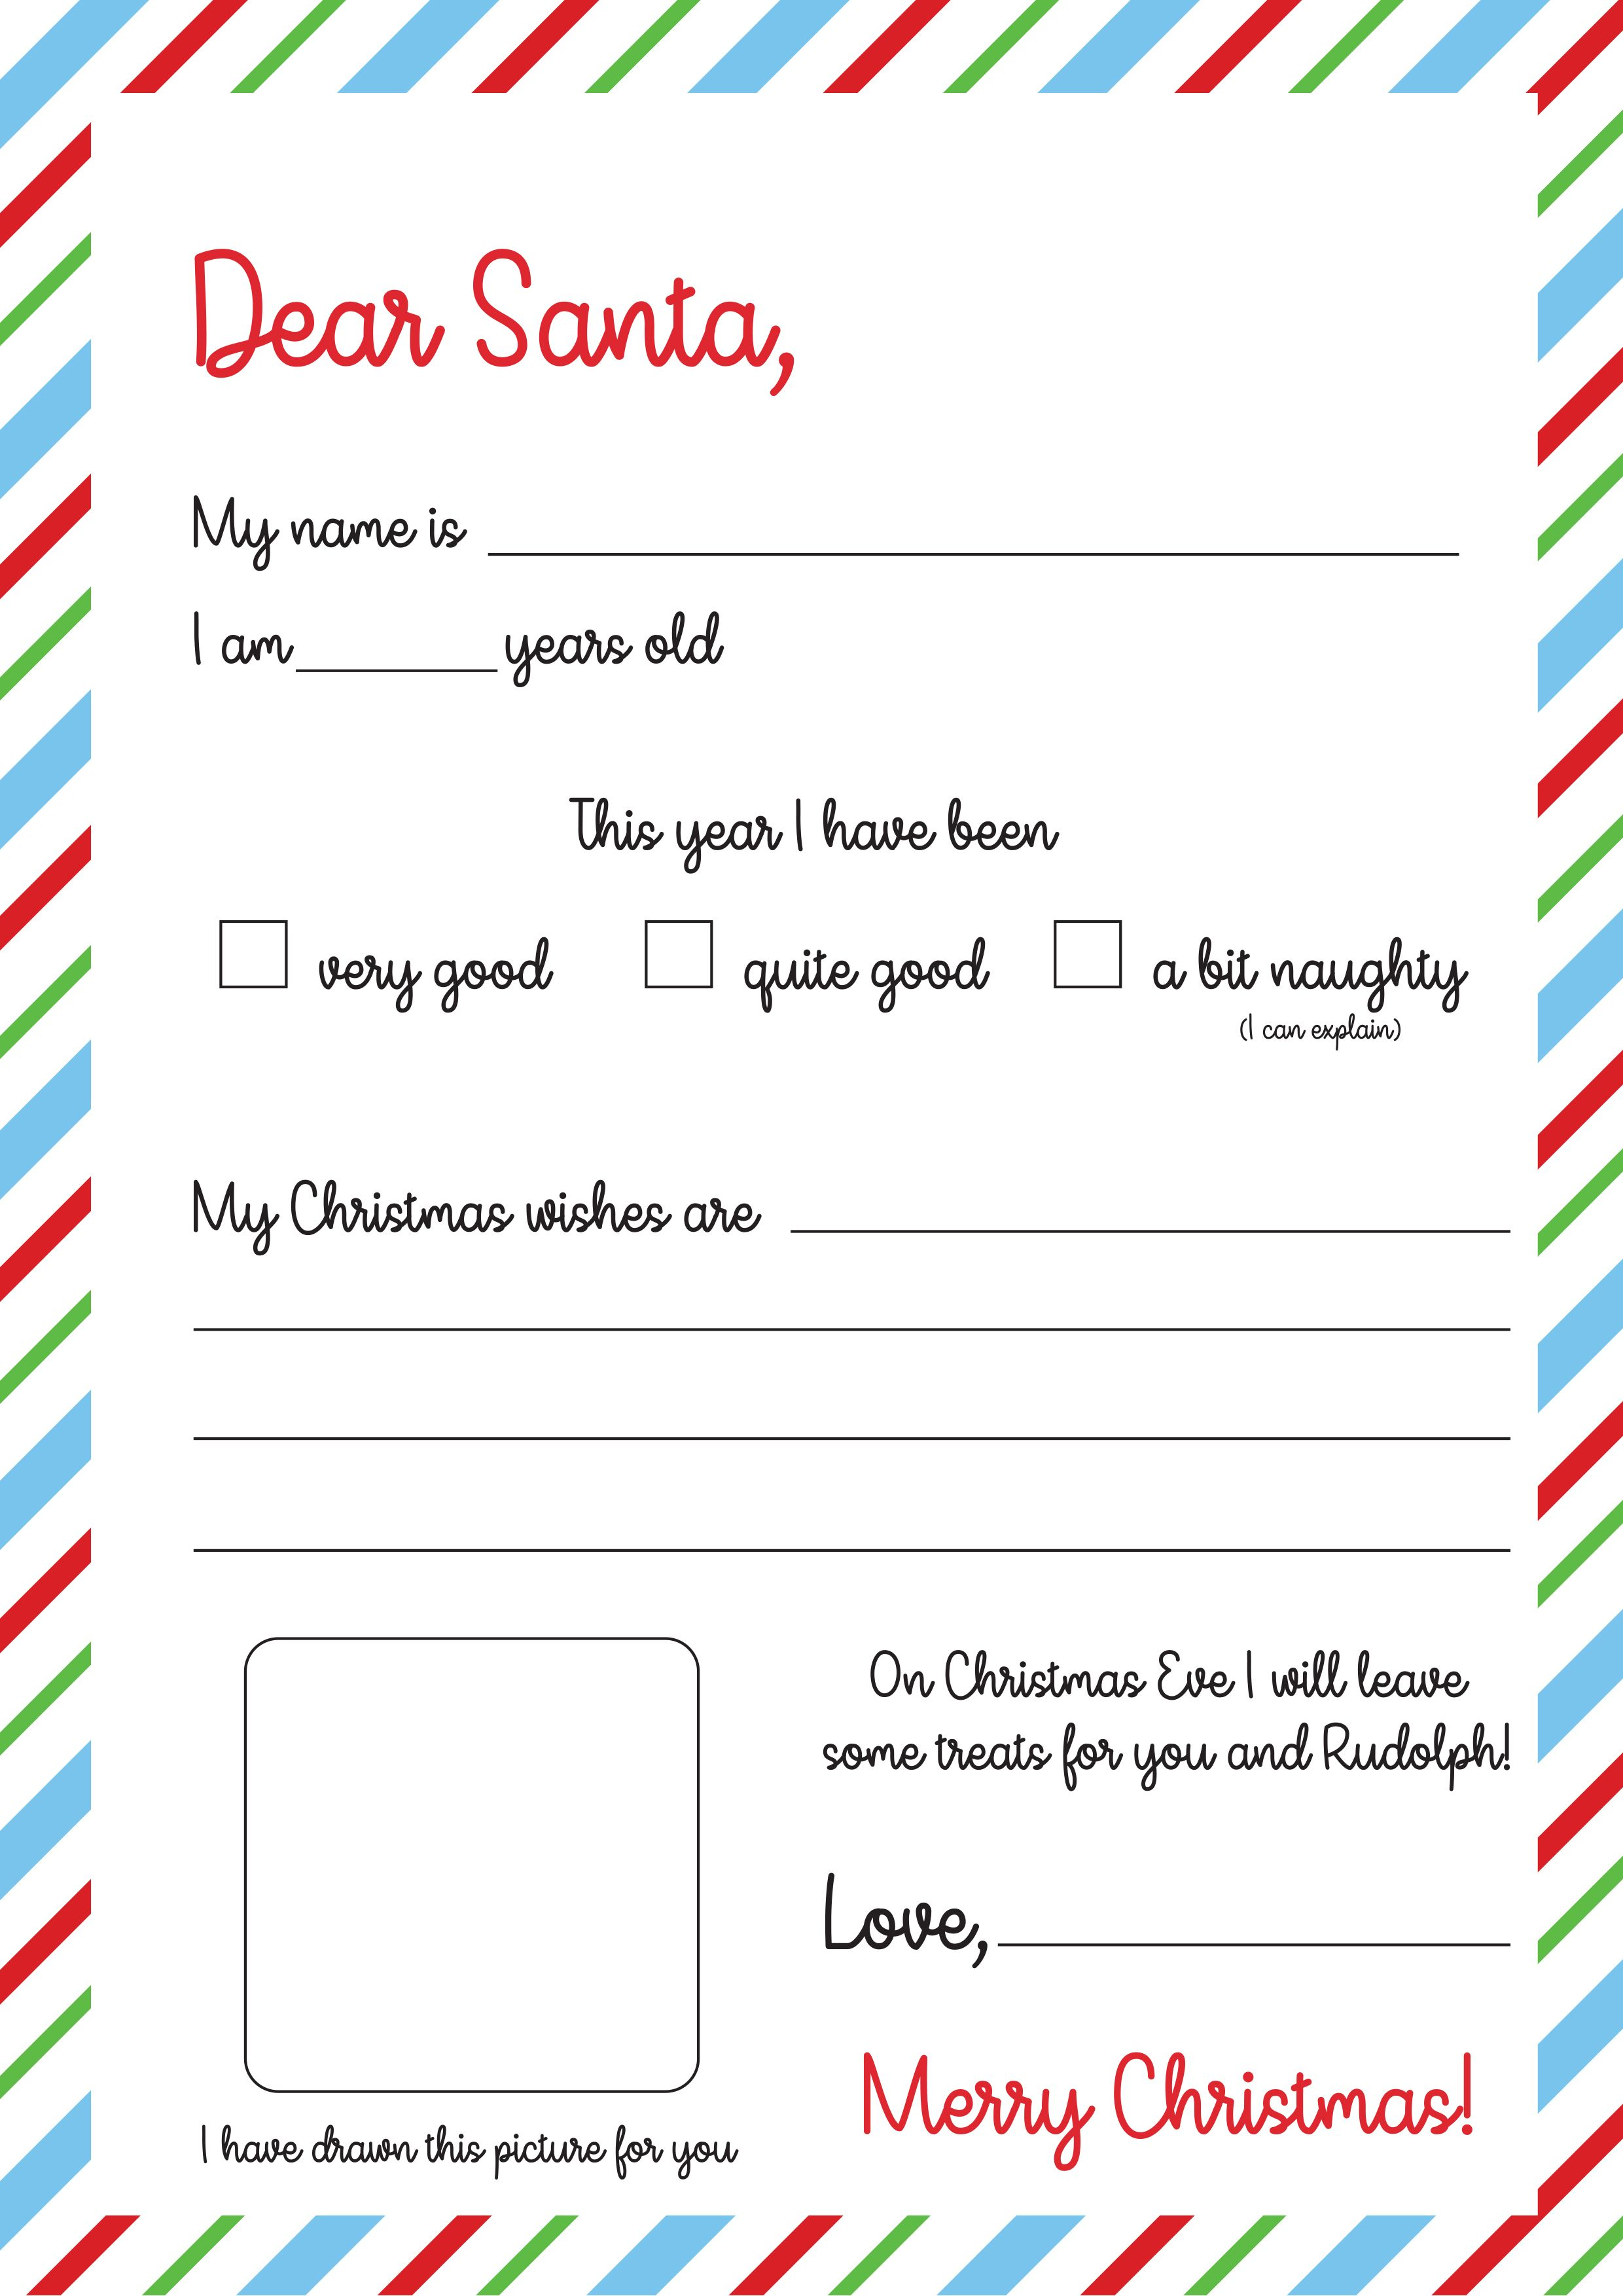 Pin by Carlene Gagnon on GulfQuest Santa letter template